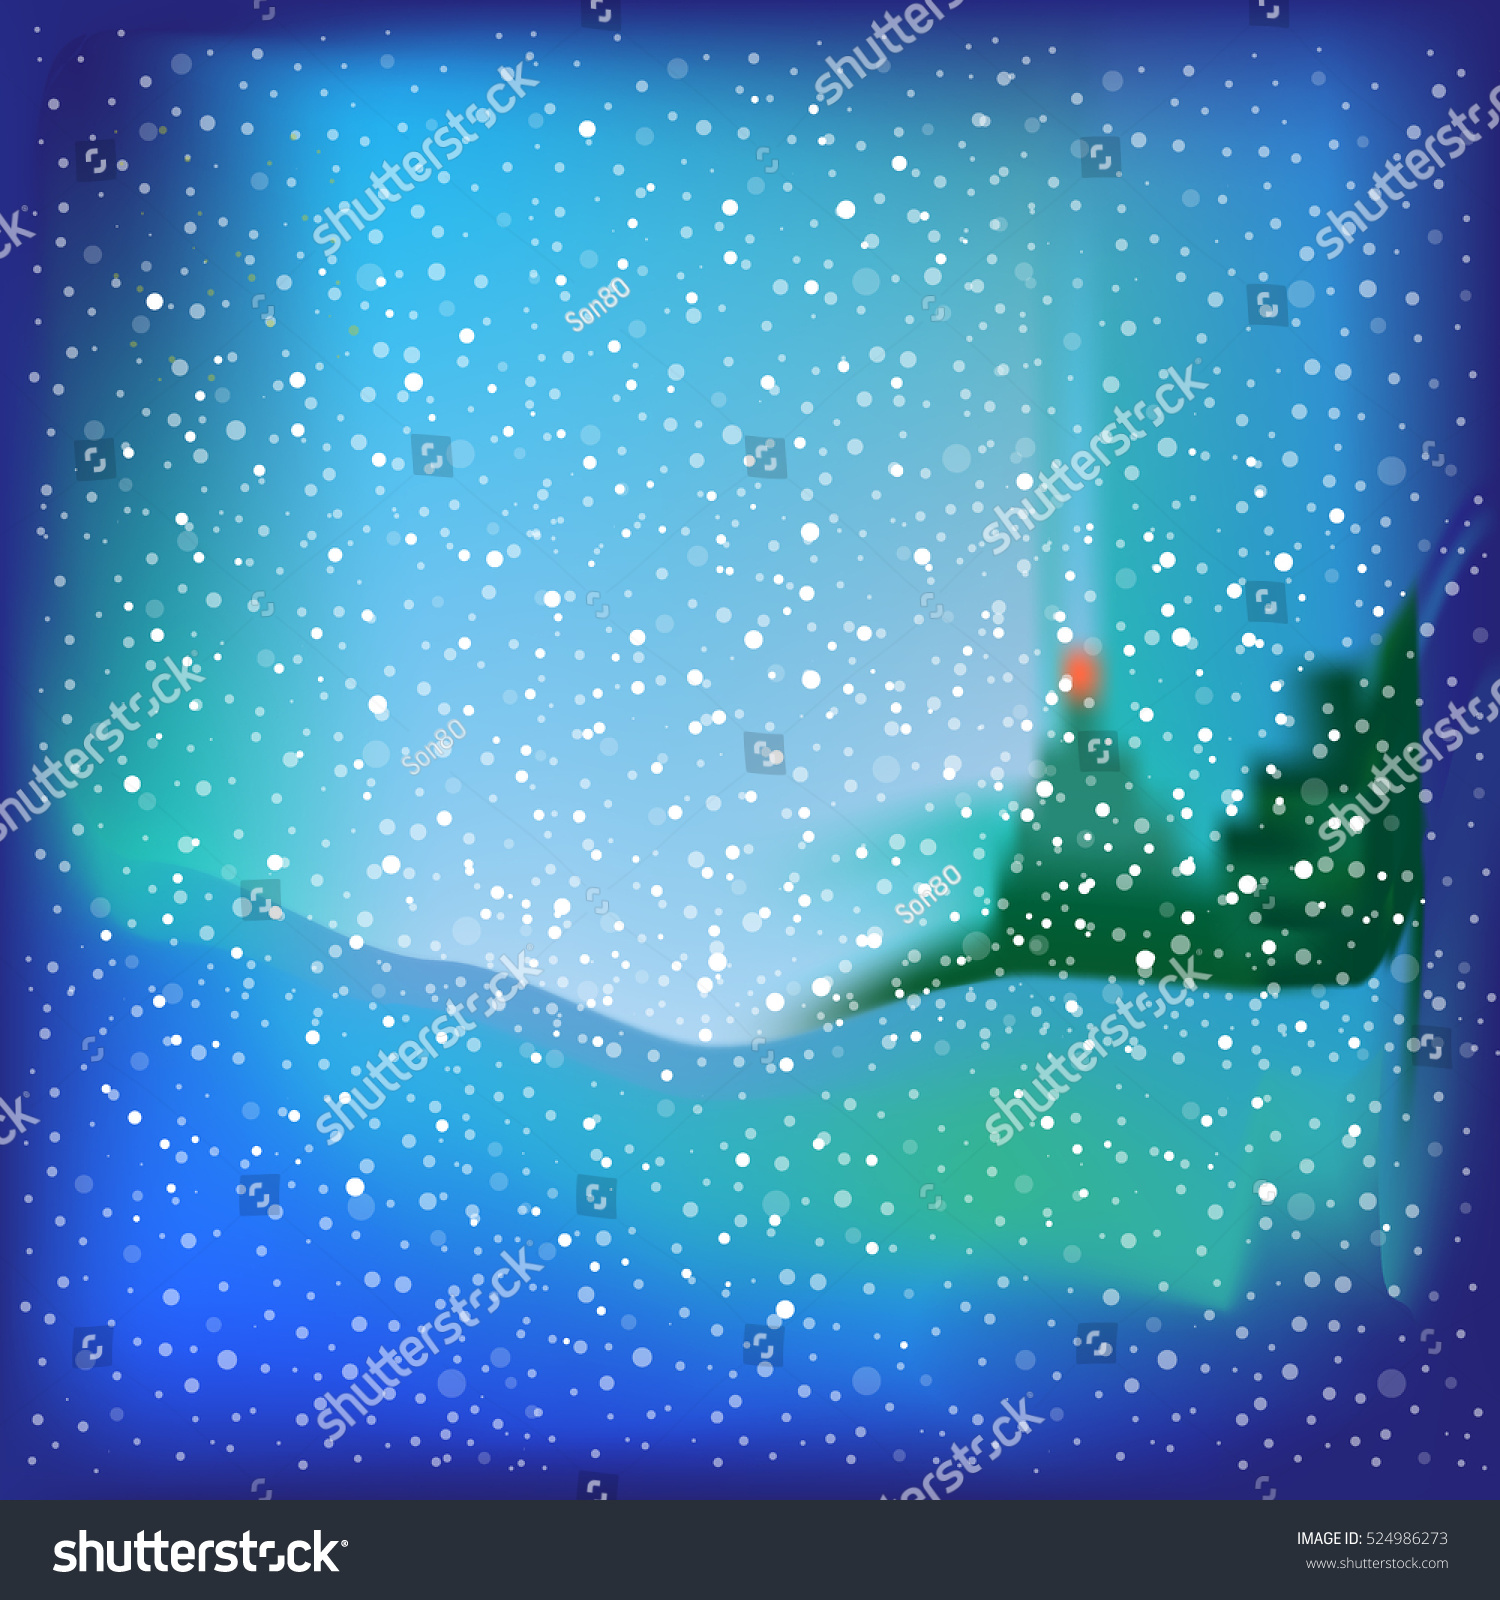 Blue background with snow and Christmas tree vector